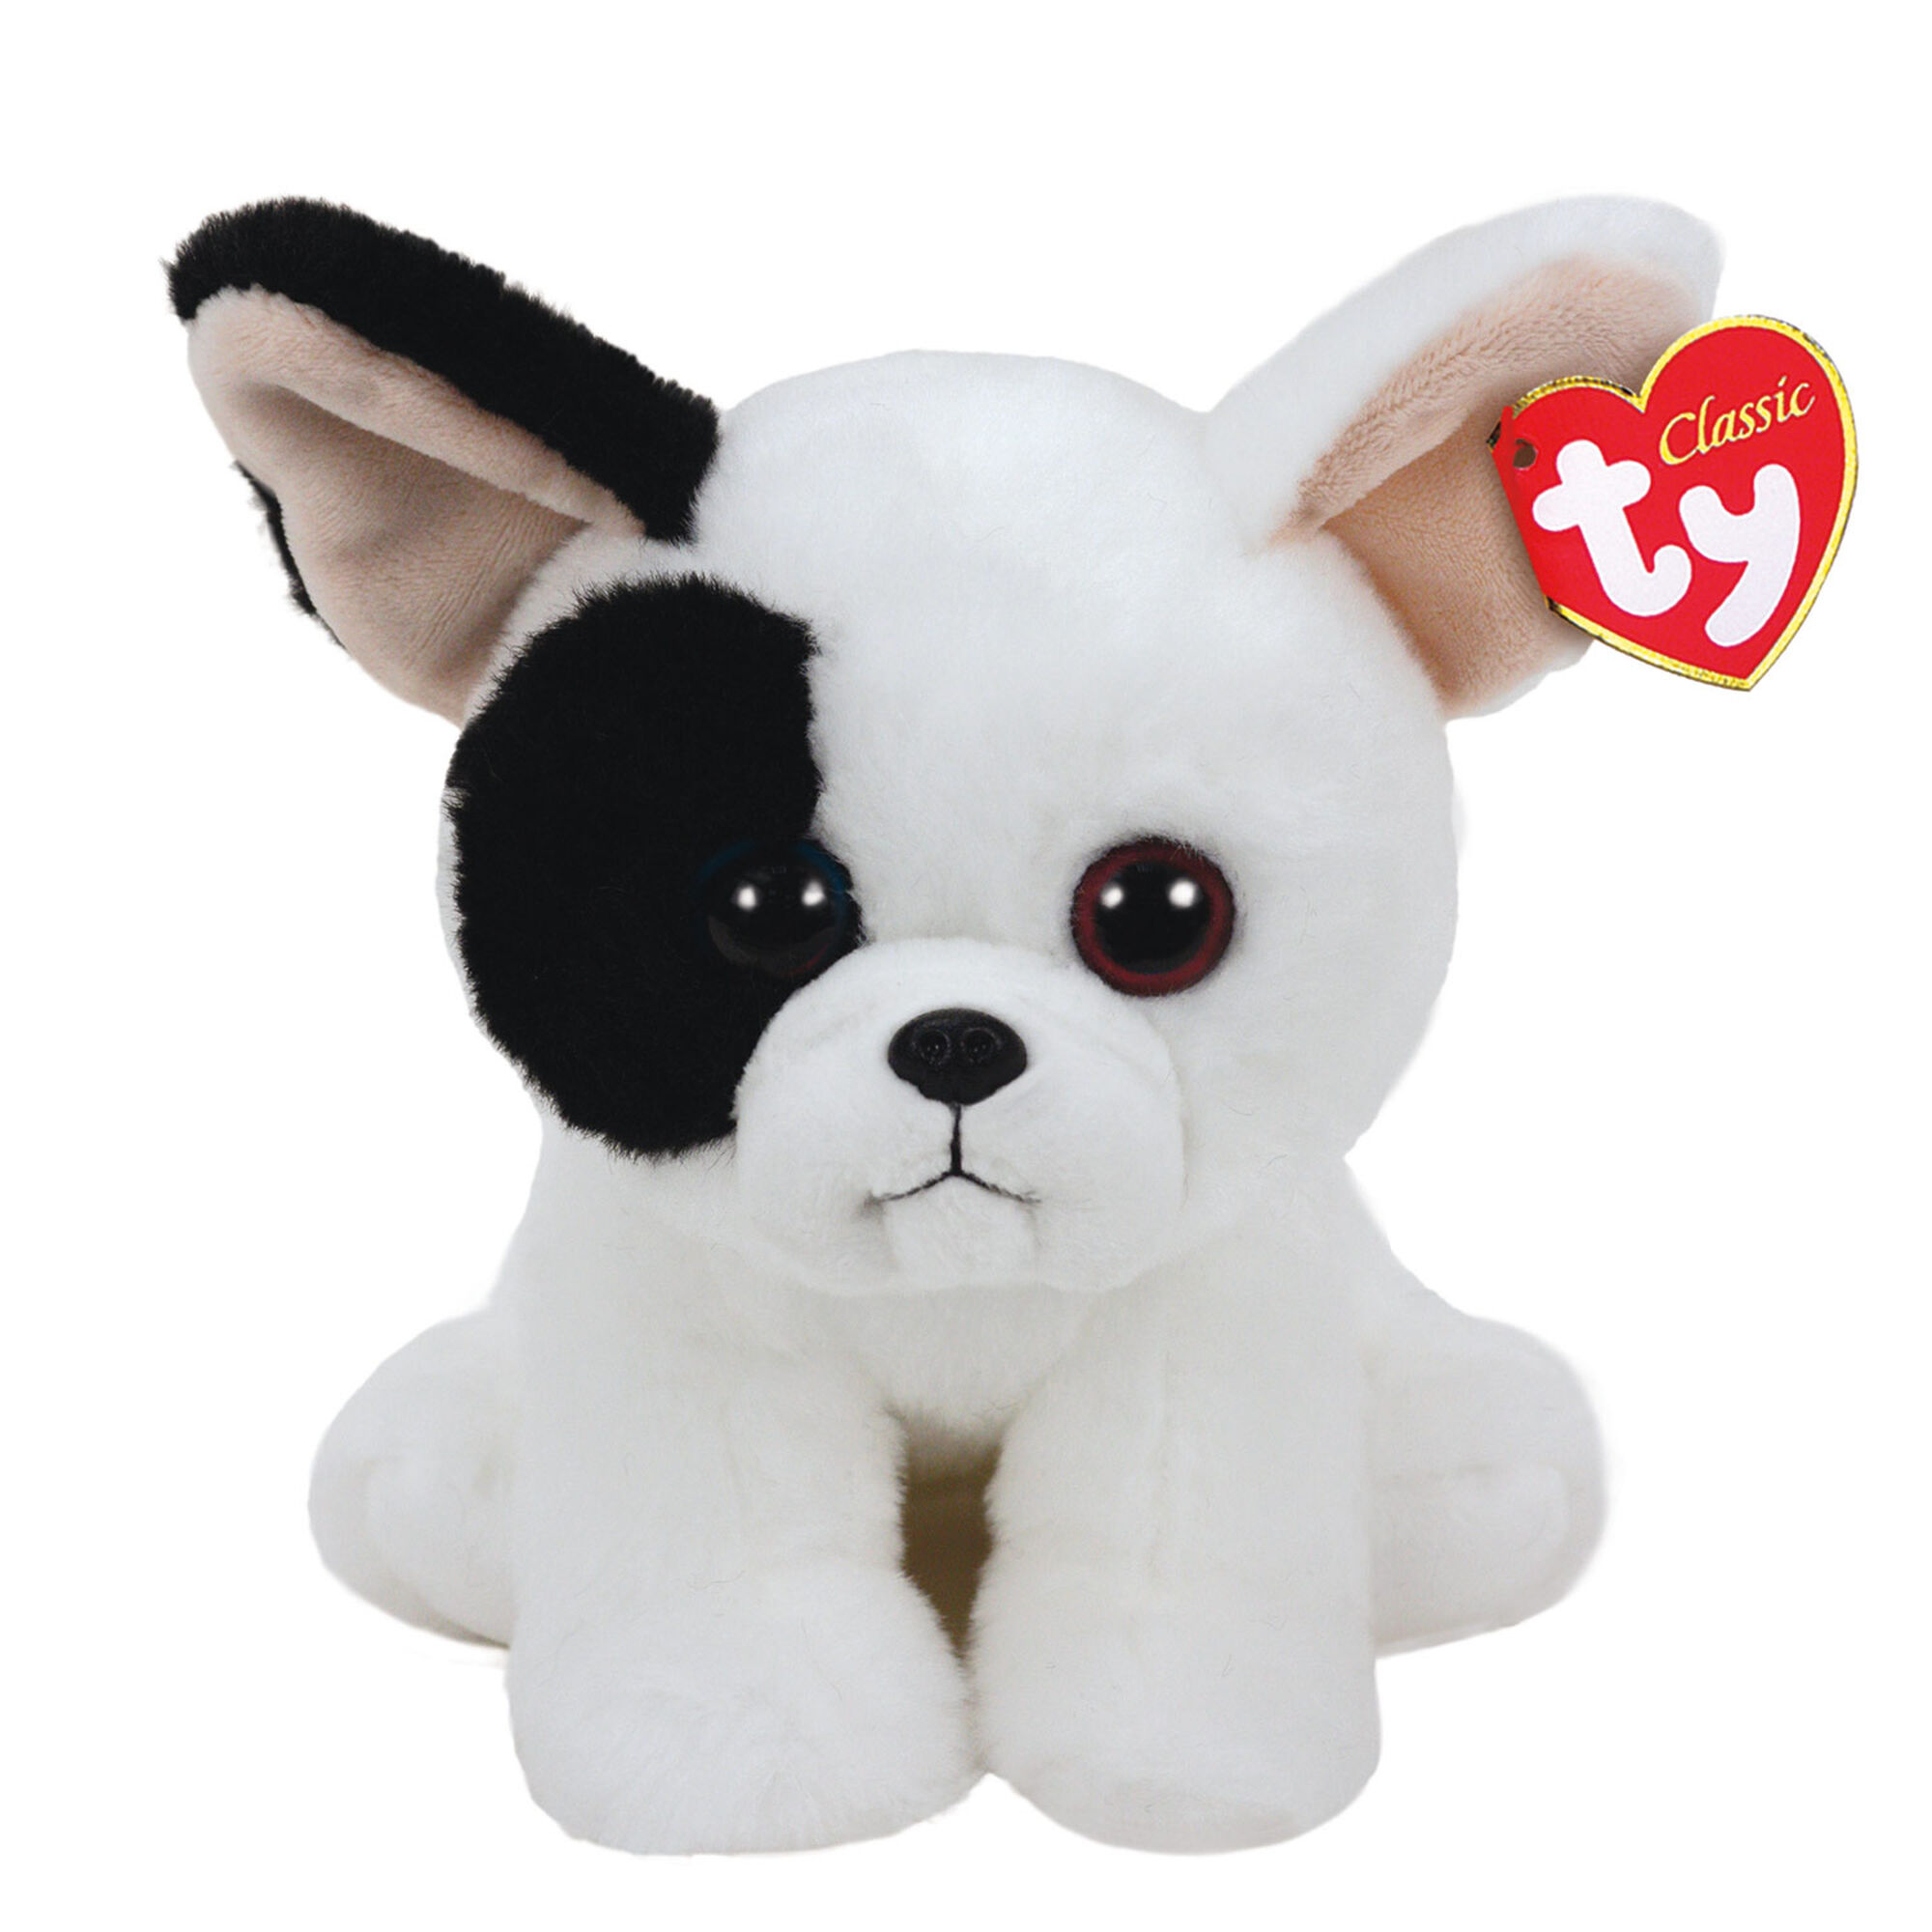 TY Beanie Baby Small Marcel the French Bulldog Soft Toy